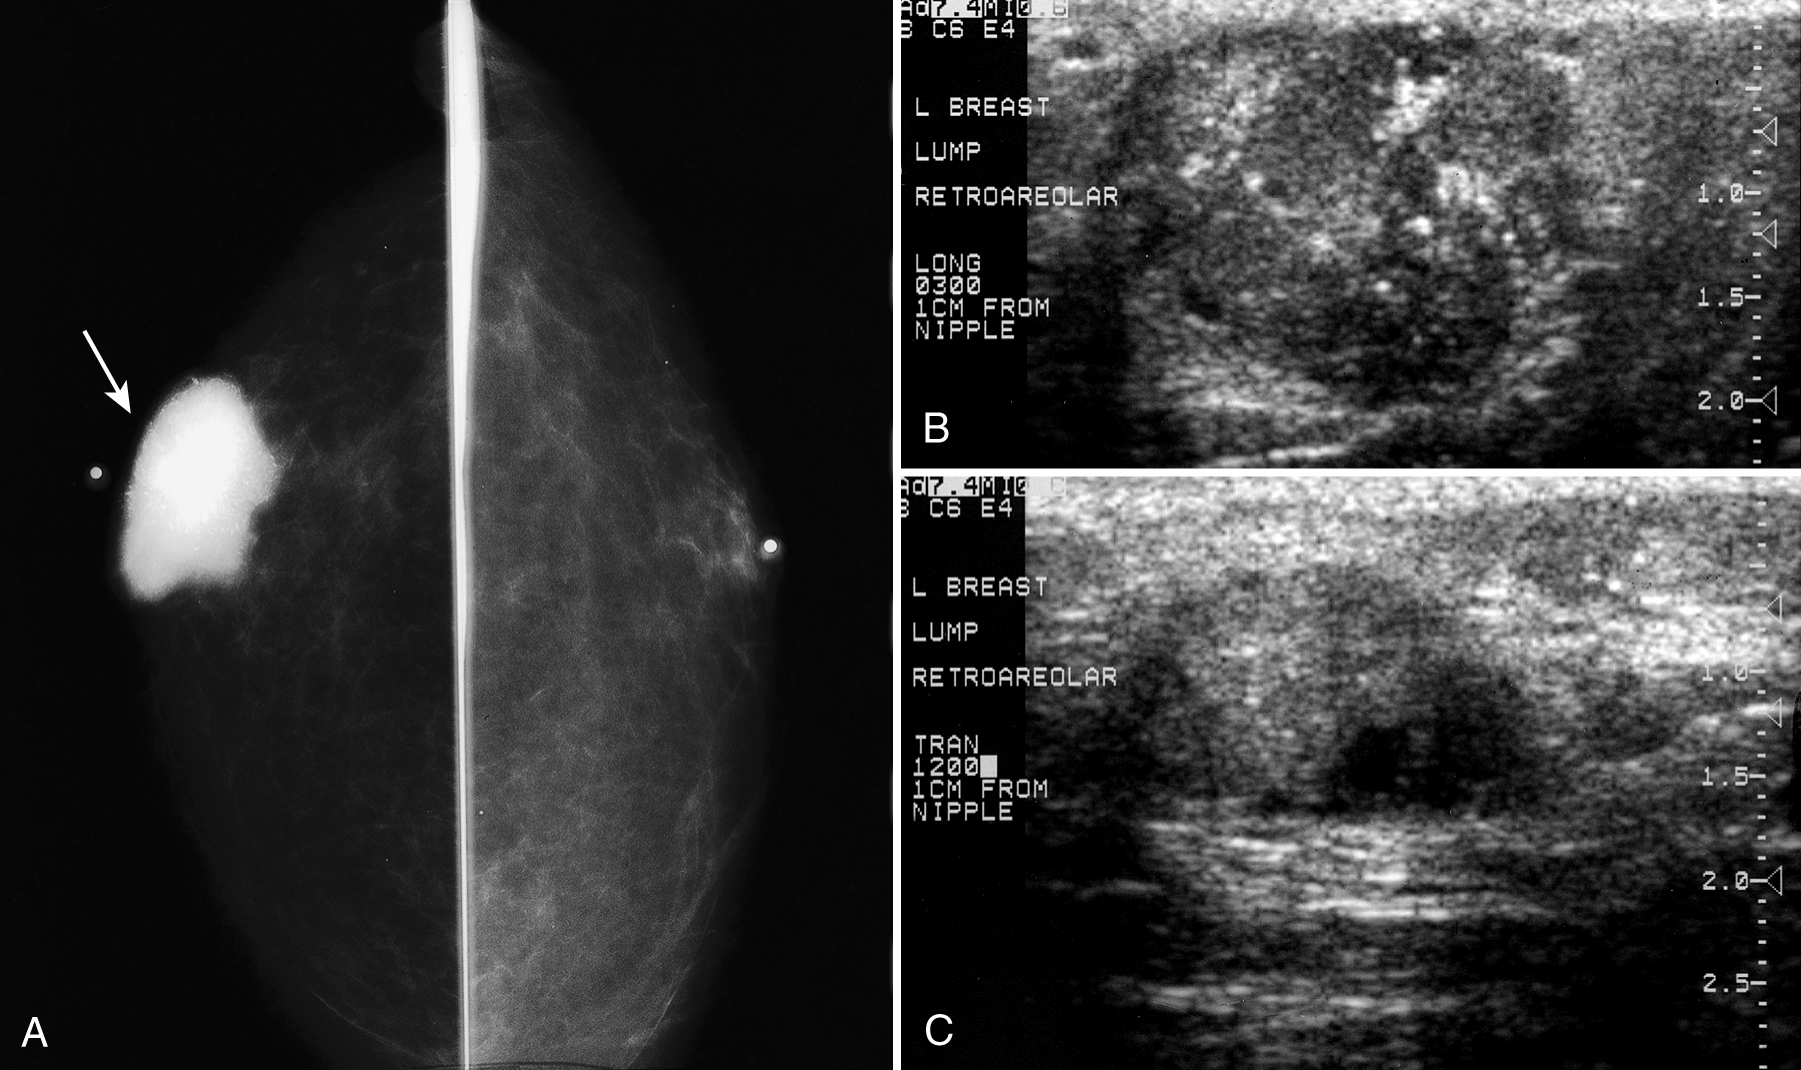 Invasive Ductal Carcinoma with Calcifications in Male Patient